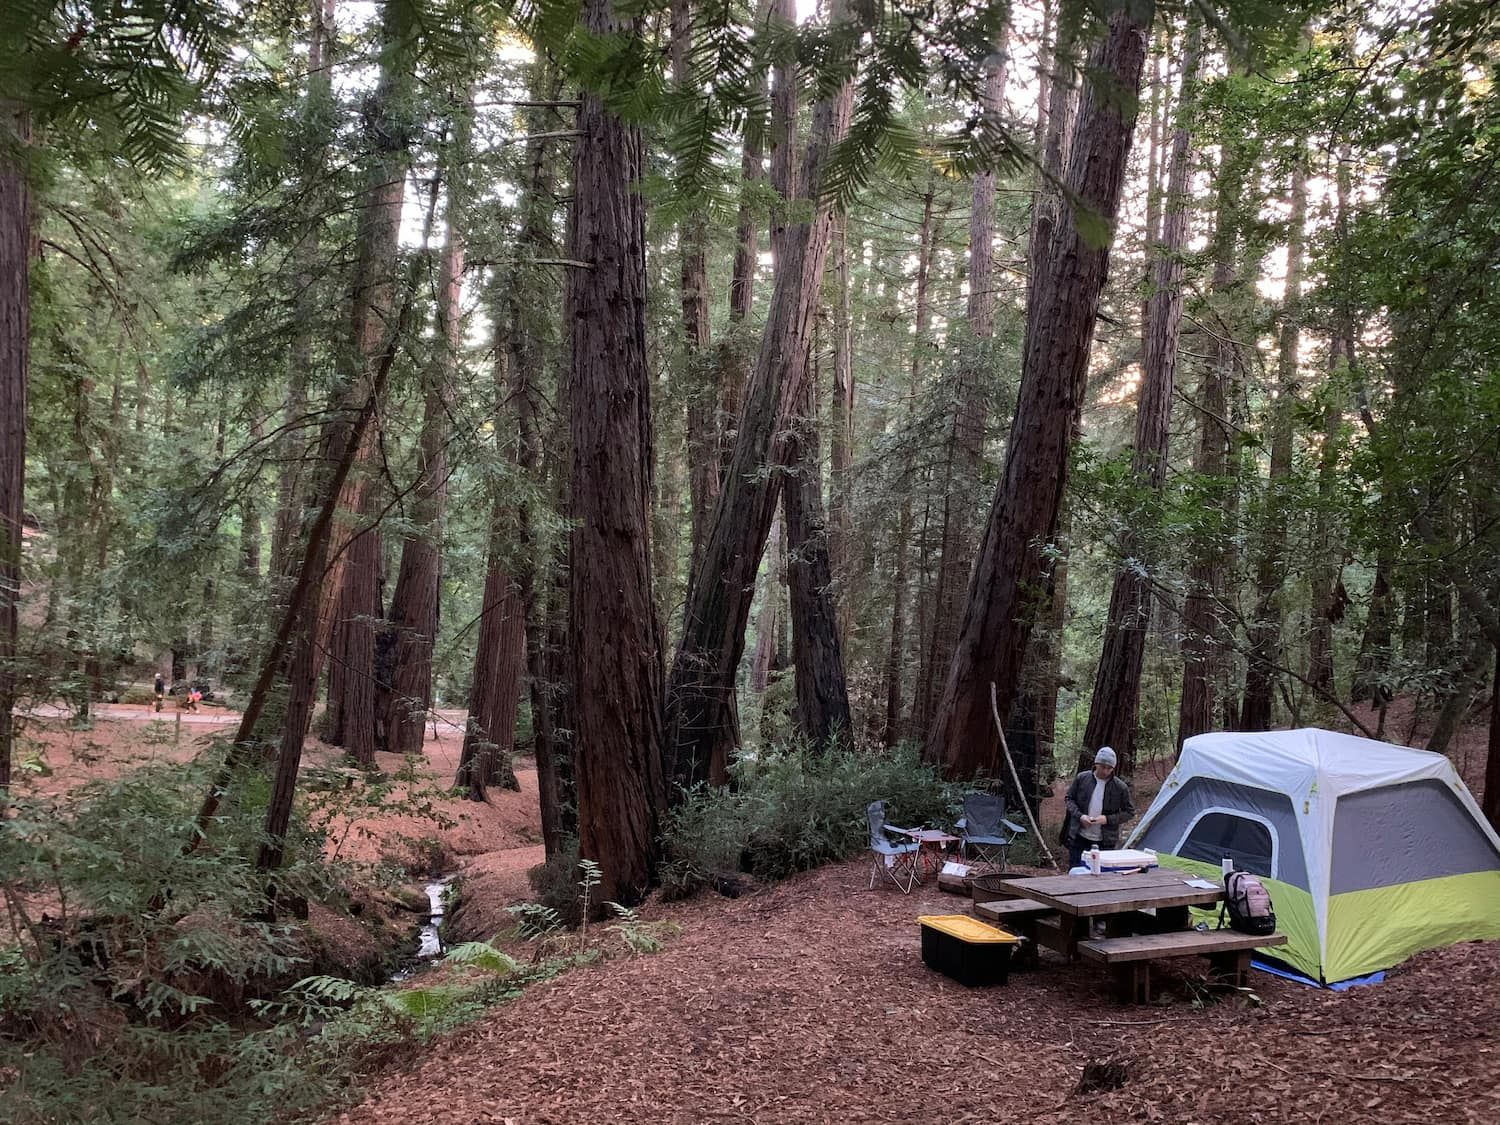 tent at campsite in thick forest